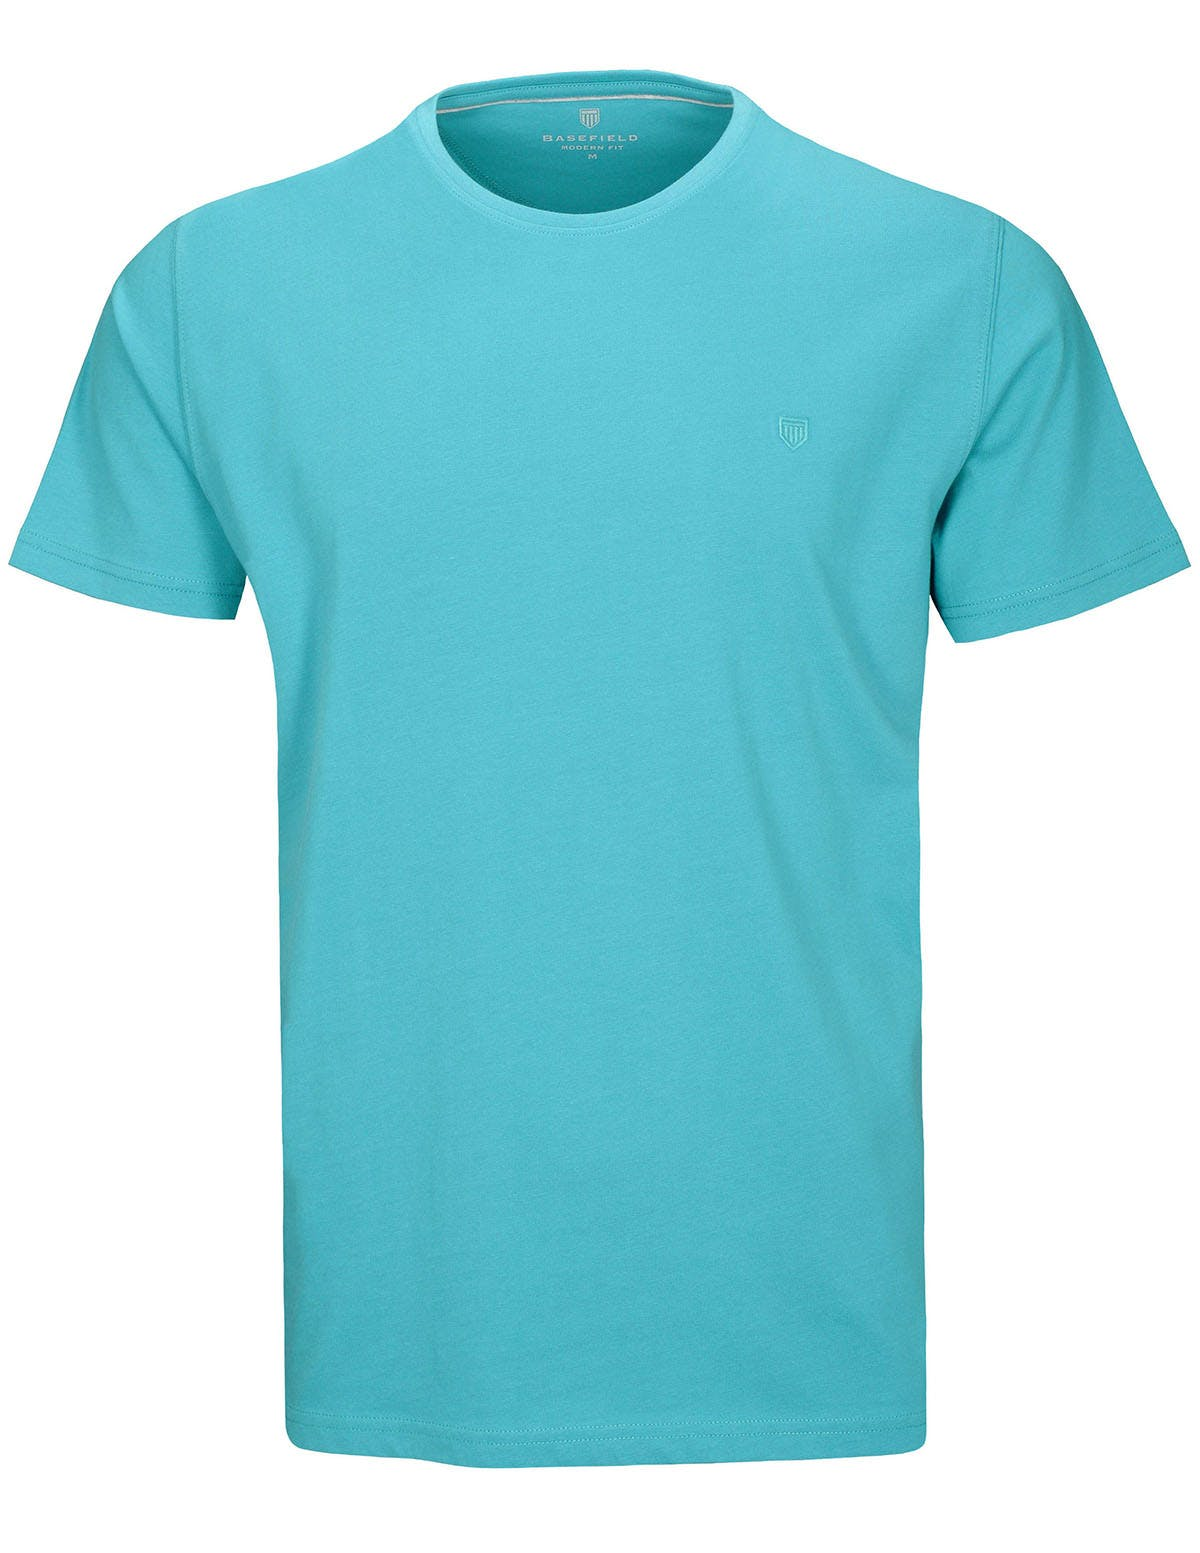 Basic T-Shirt - Fresh Aqua